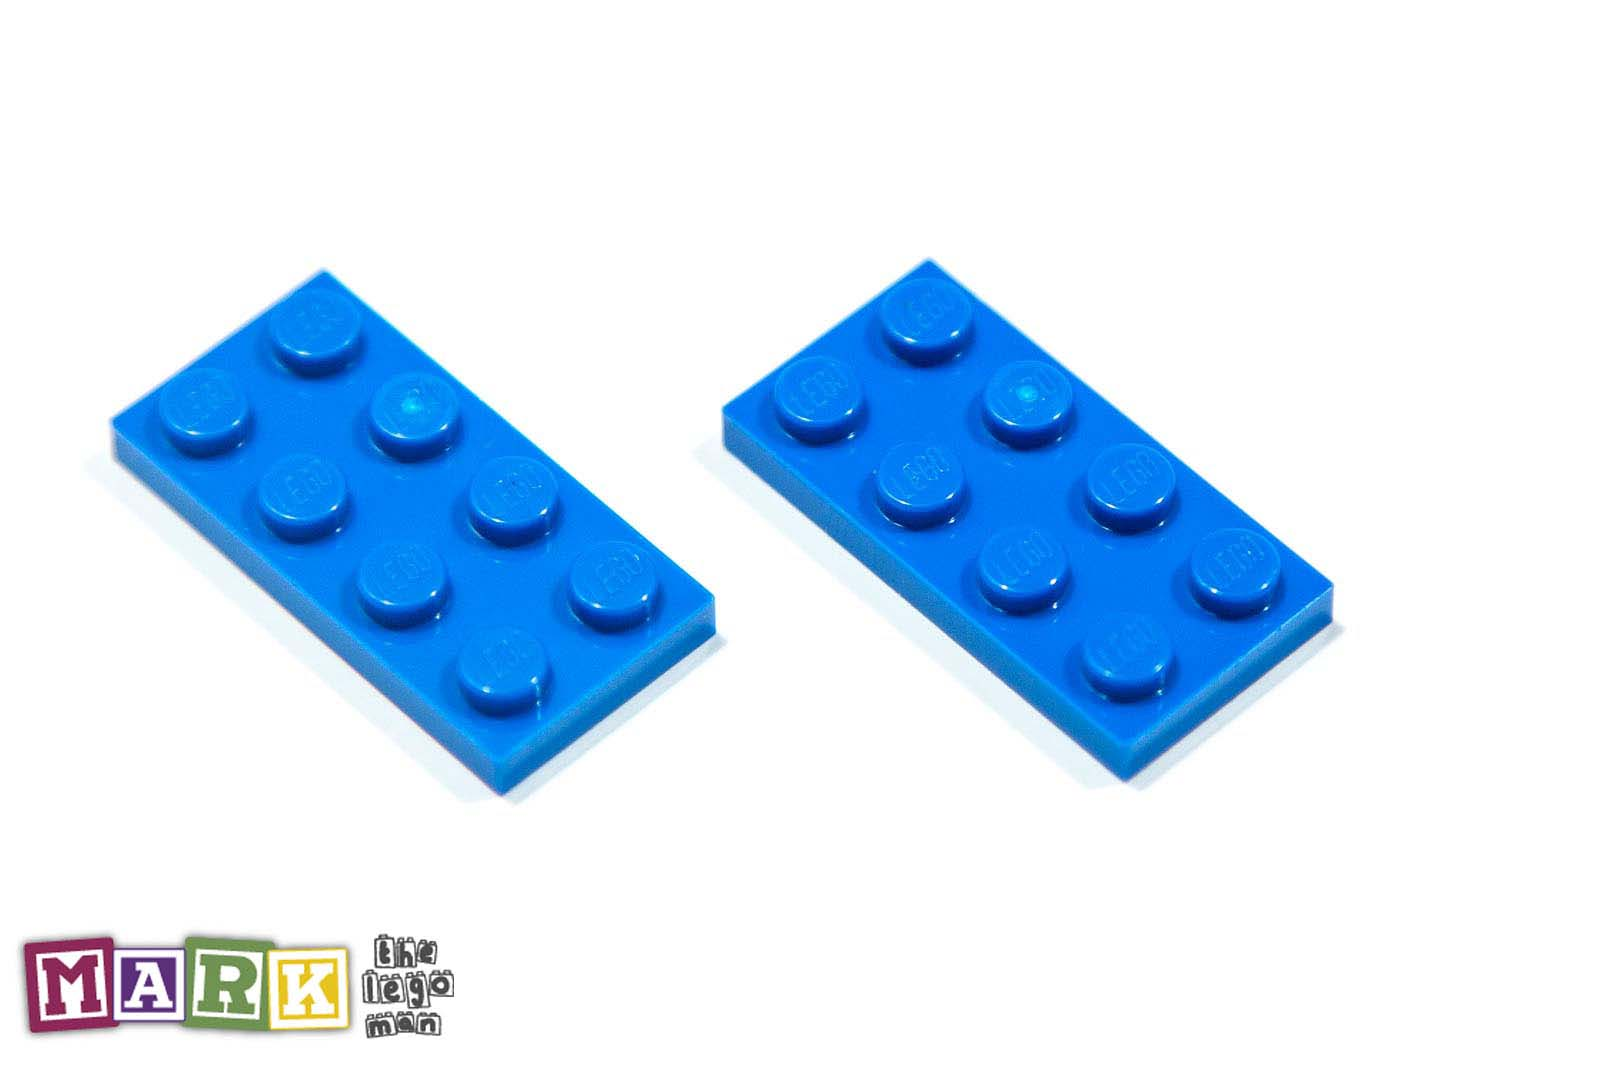 NEW Lego 302023 3020 2x Bright Blue 2x4 Plate